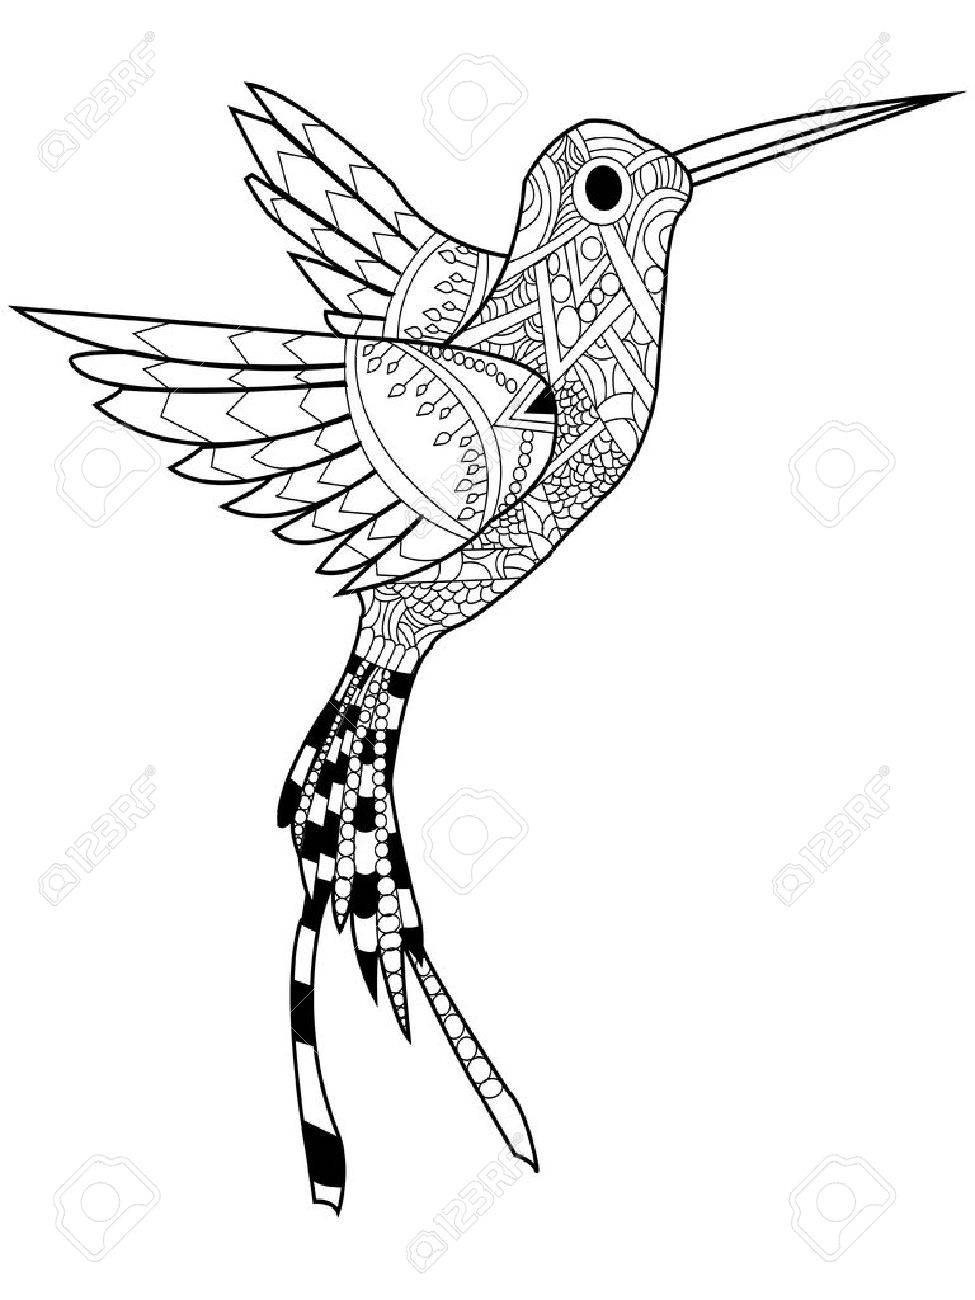 Hummingbird coloring book for adults vector illustration. Anti-stress..